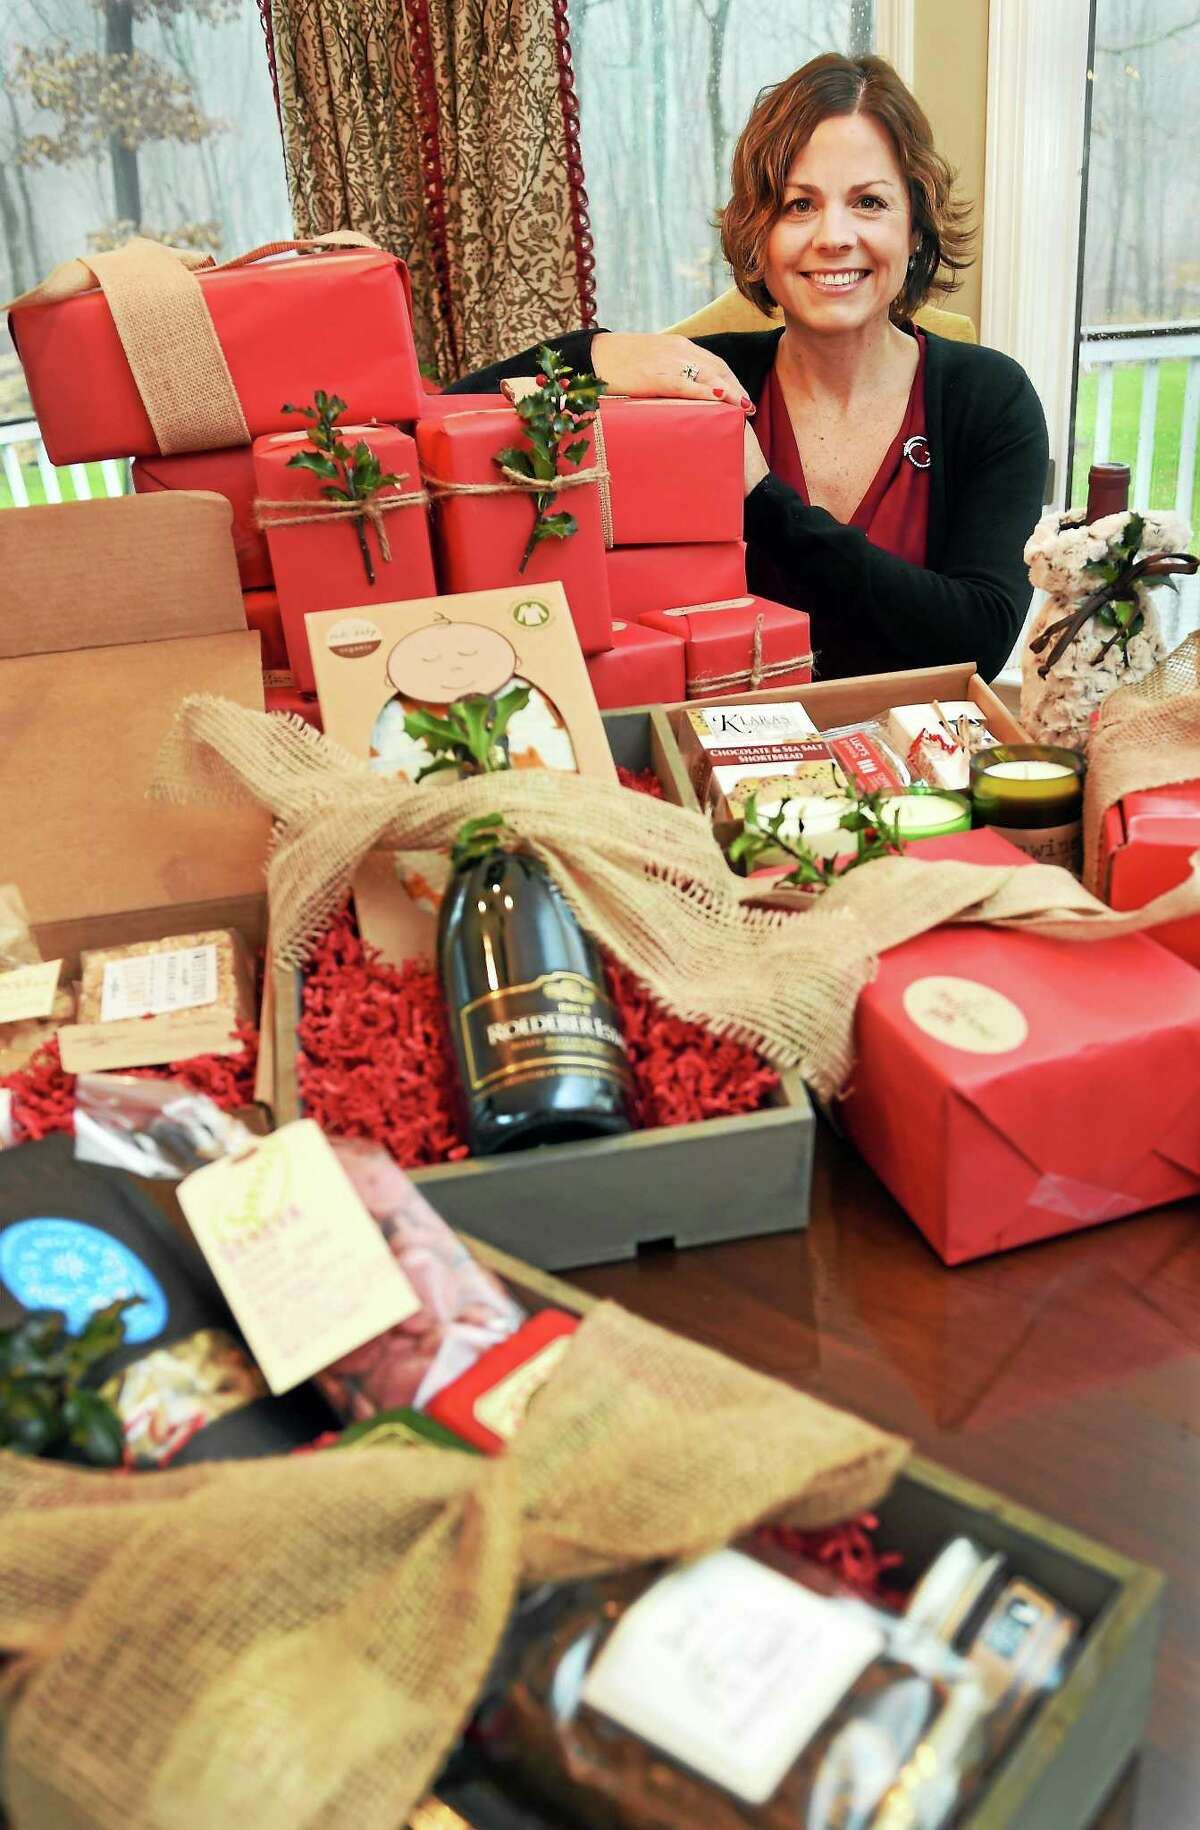 (Photo by Peter Hvizdak - New Haven Register) Alison Wehrle of Madison, owner of Red House Gifts, makes gift baskets for individuals and corporate clients with online ordering. Baskets may include everything from wine and cheese, specialty foods, to baby gifts and cocoa mix.